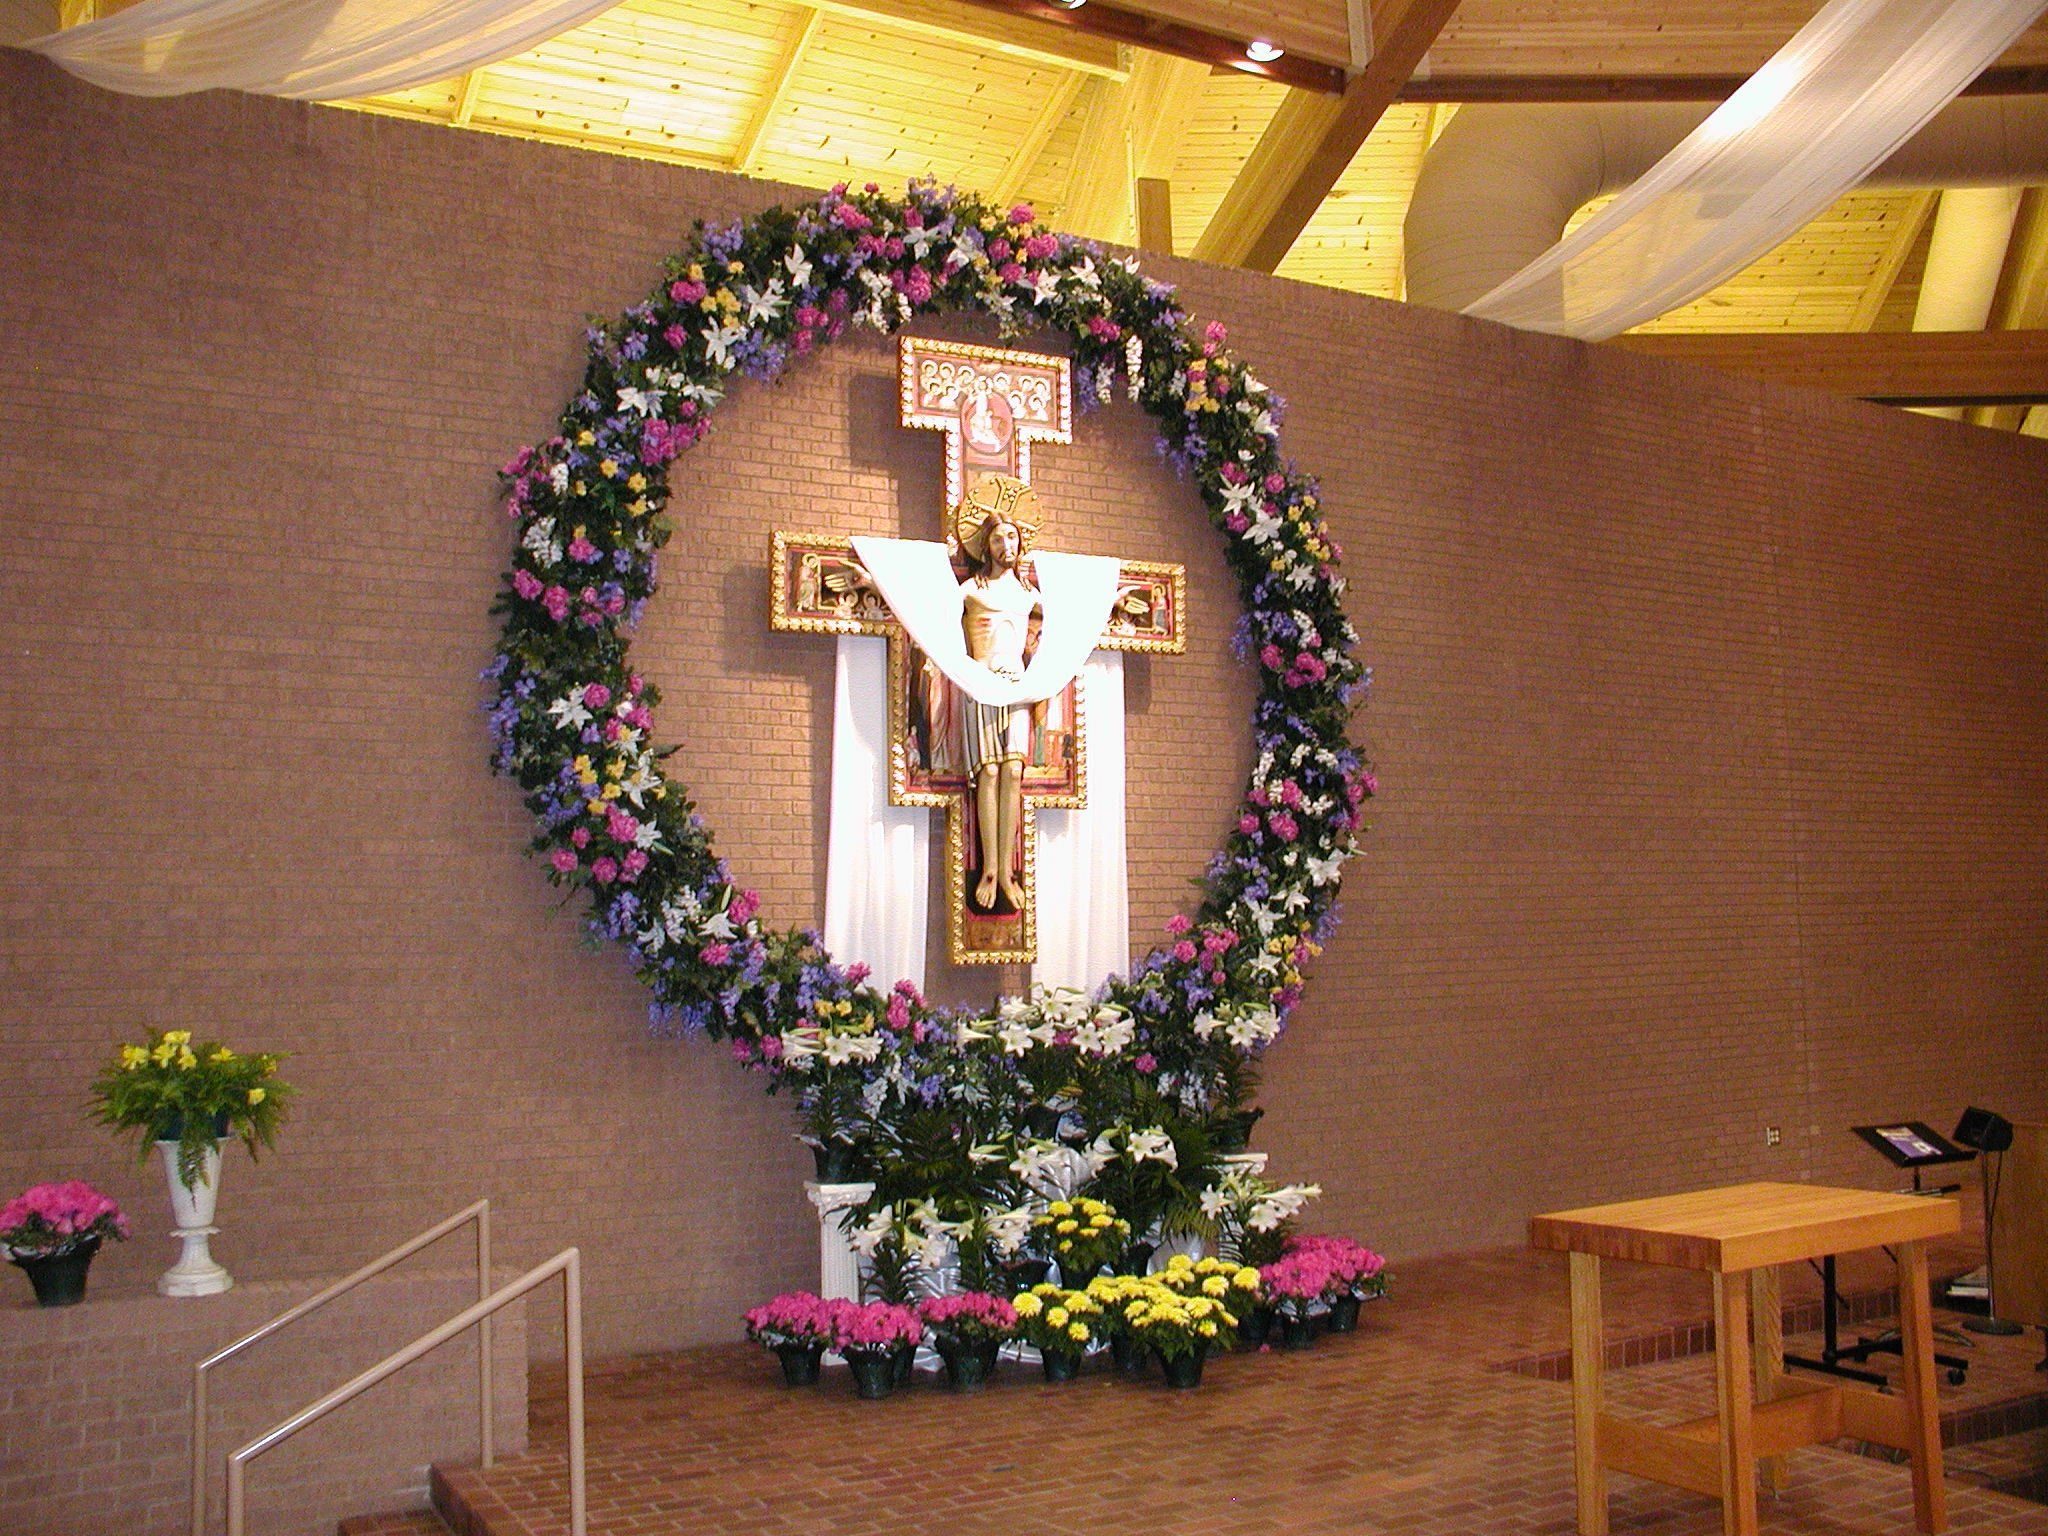 Christian easter decorations for the home - Easter Decoration Church Google Search